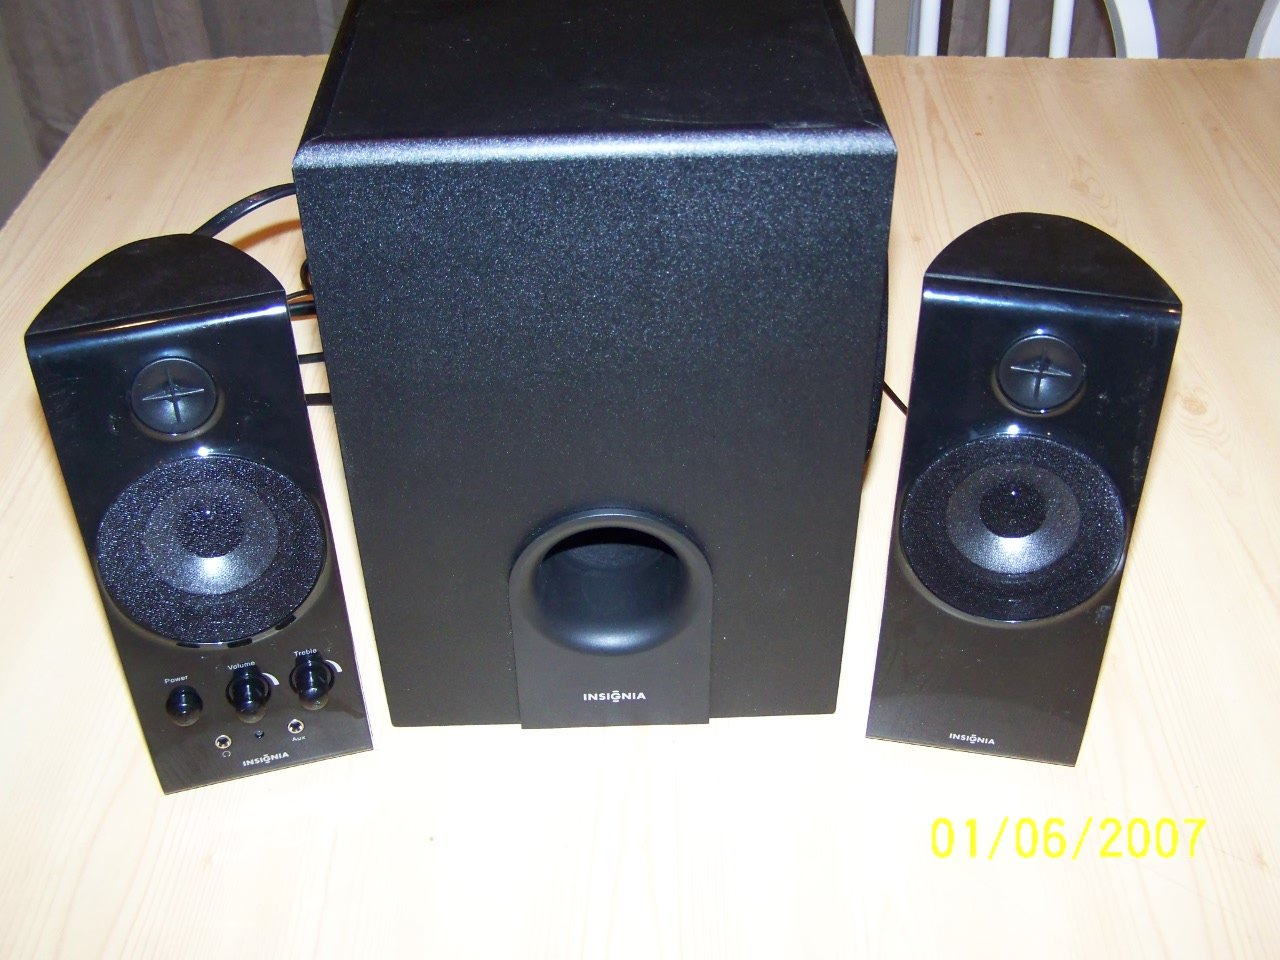 Amazon.com: Insignia 2.1 Computer Speaker System NS-PCS41 4 Piece With  Subwoofer: Computers & Accessories